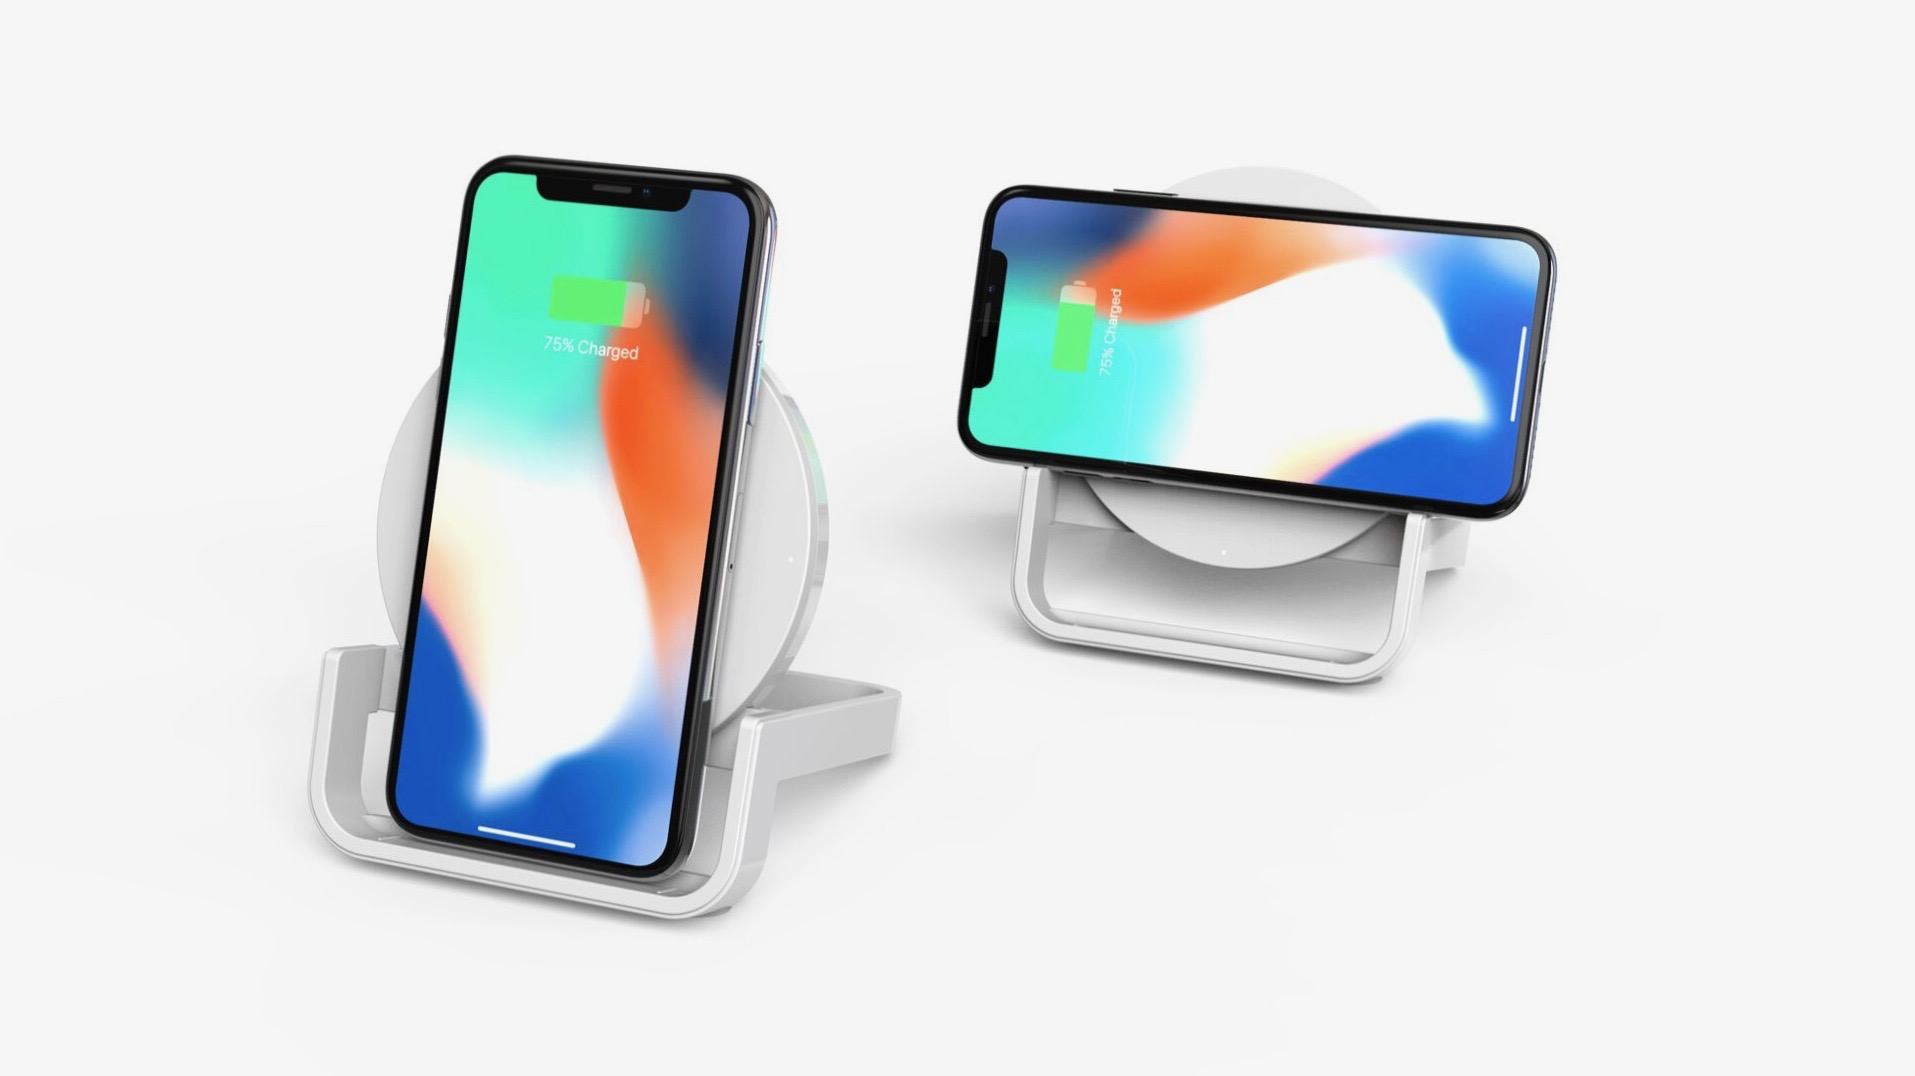 Belkin launches new 10W Boost Up Wireless Charging Pad and Stand with unique design for iPhone